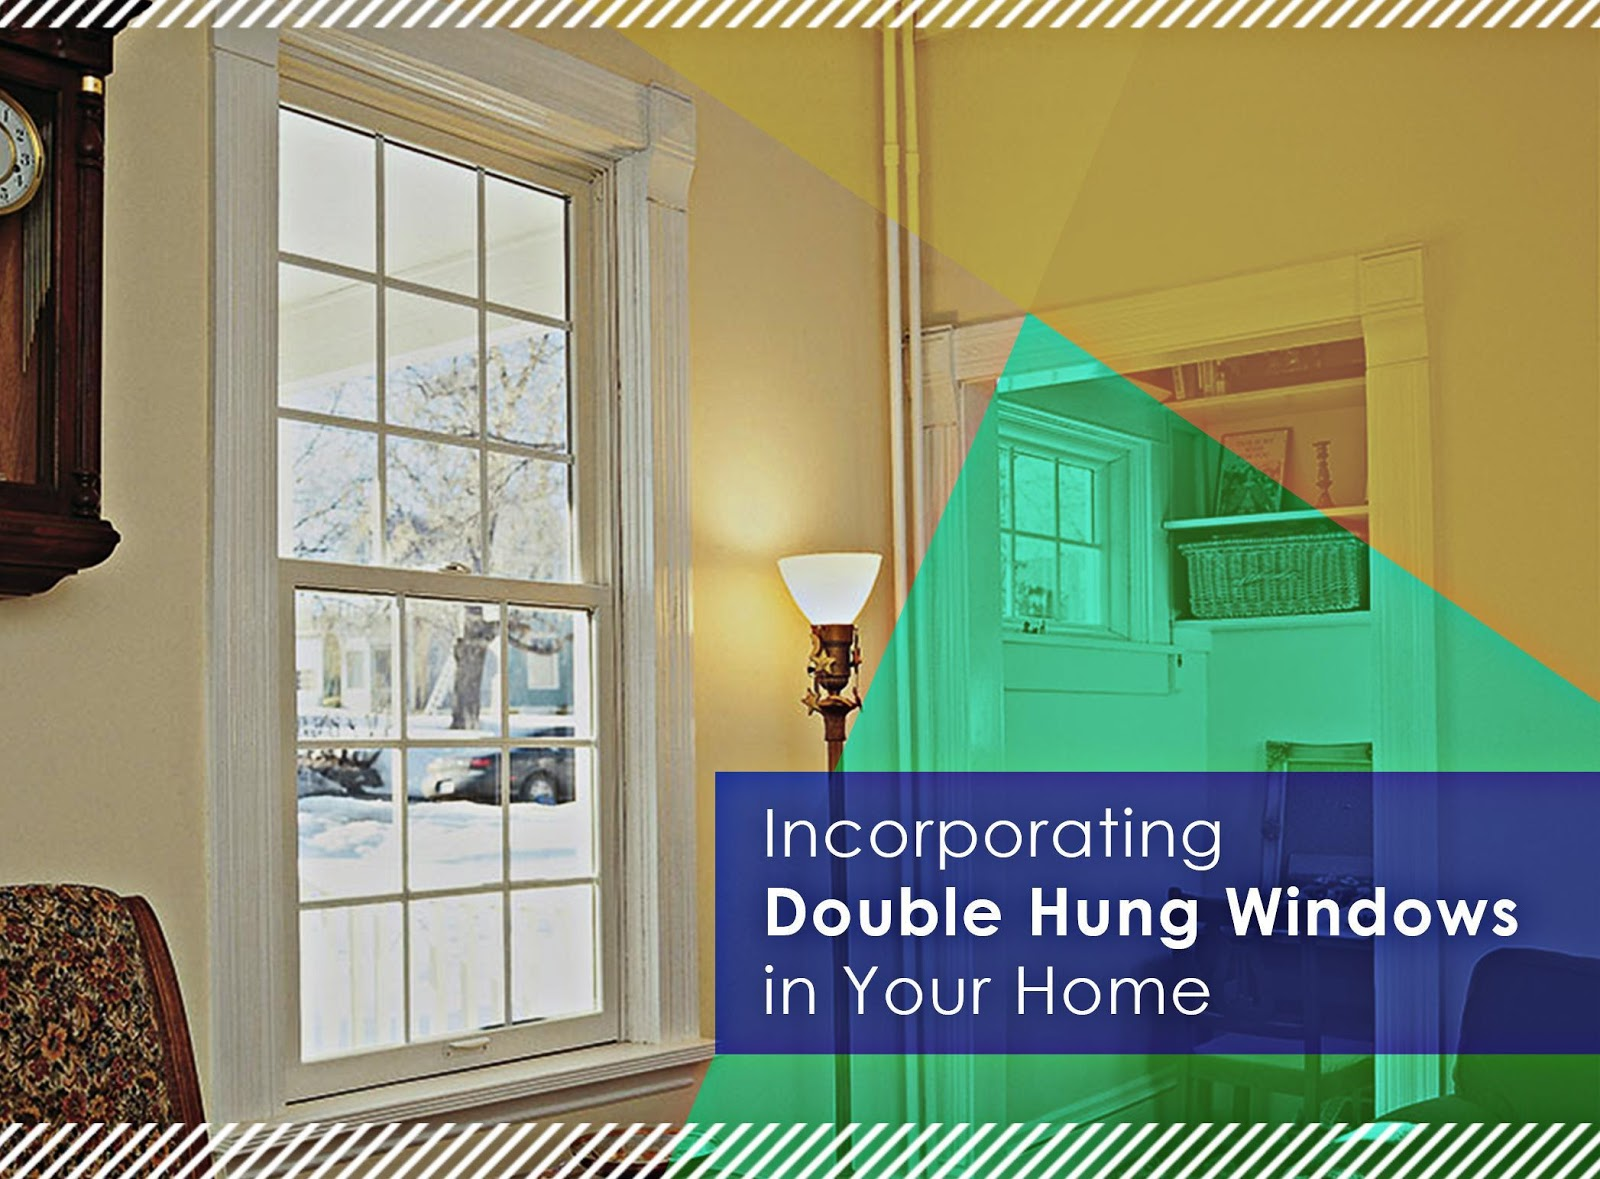 Incorporating Double Hung Windows in Your Home